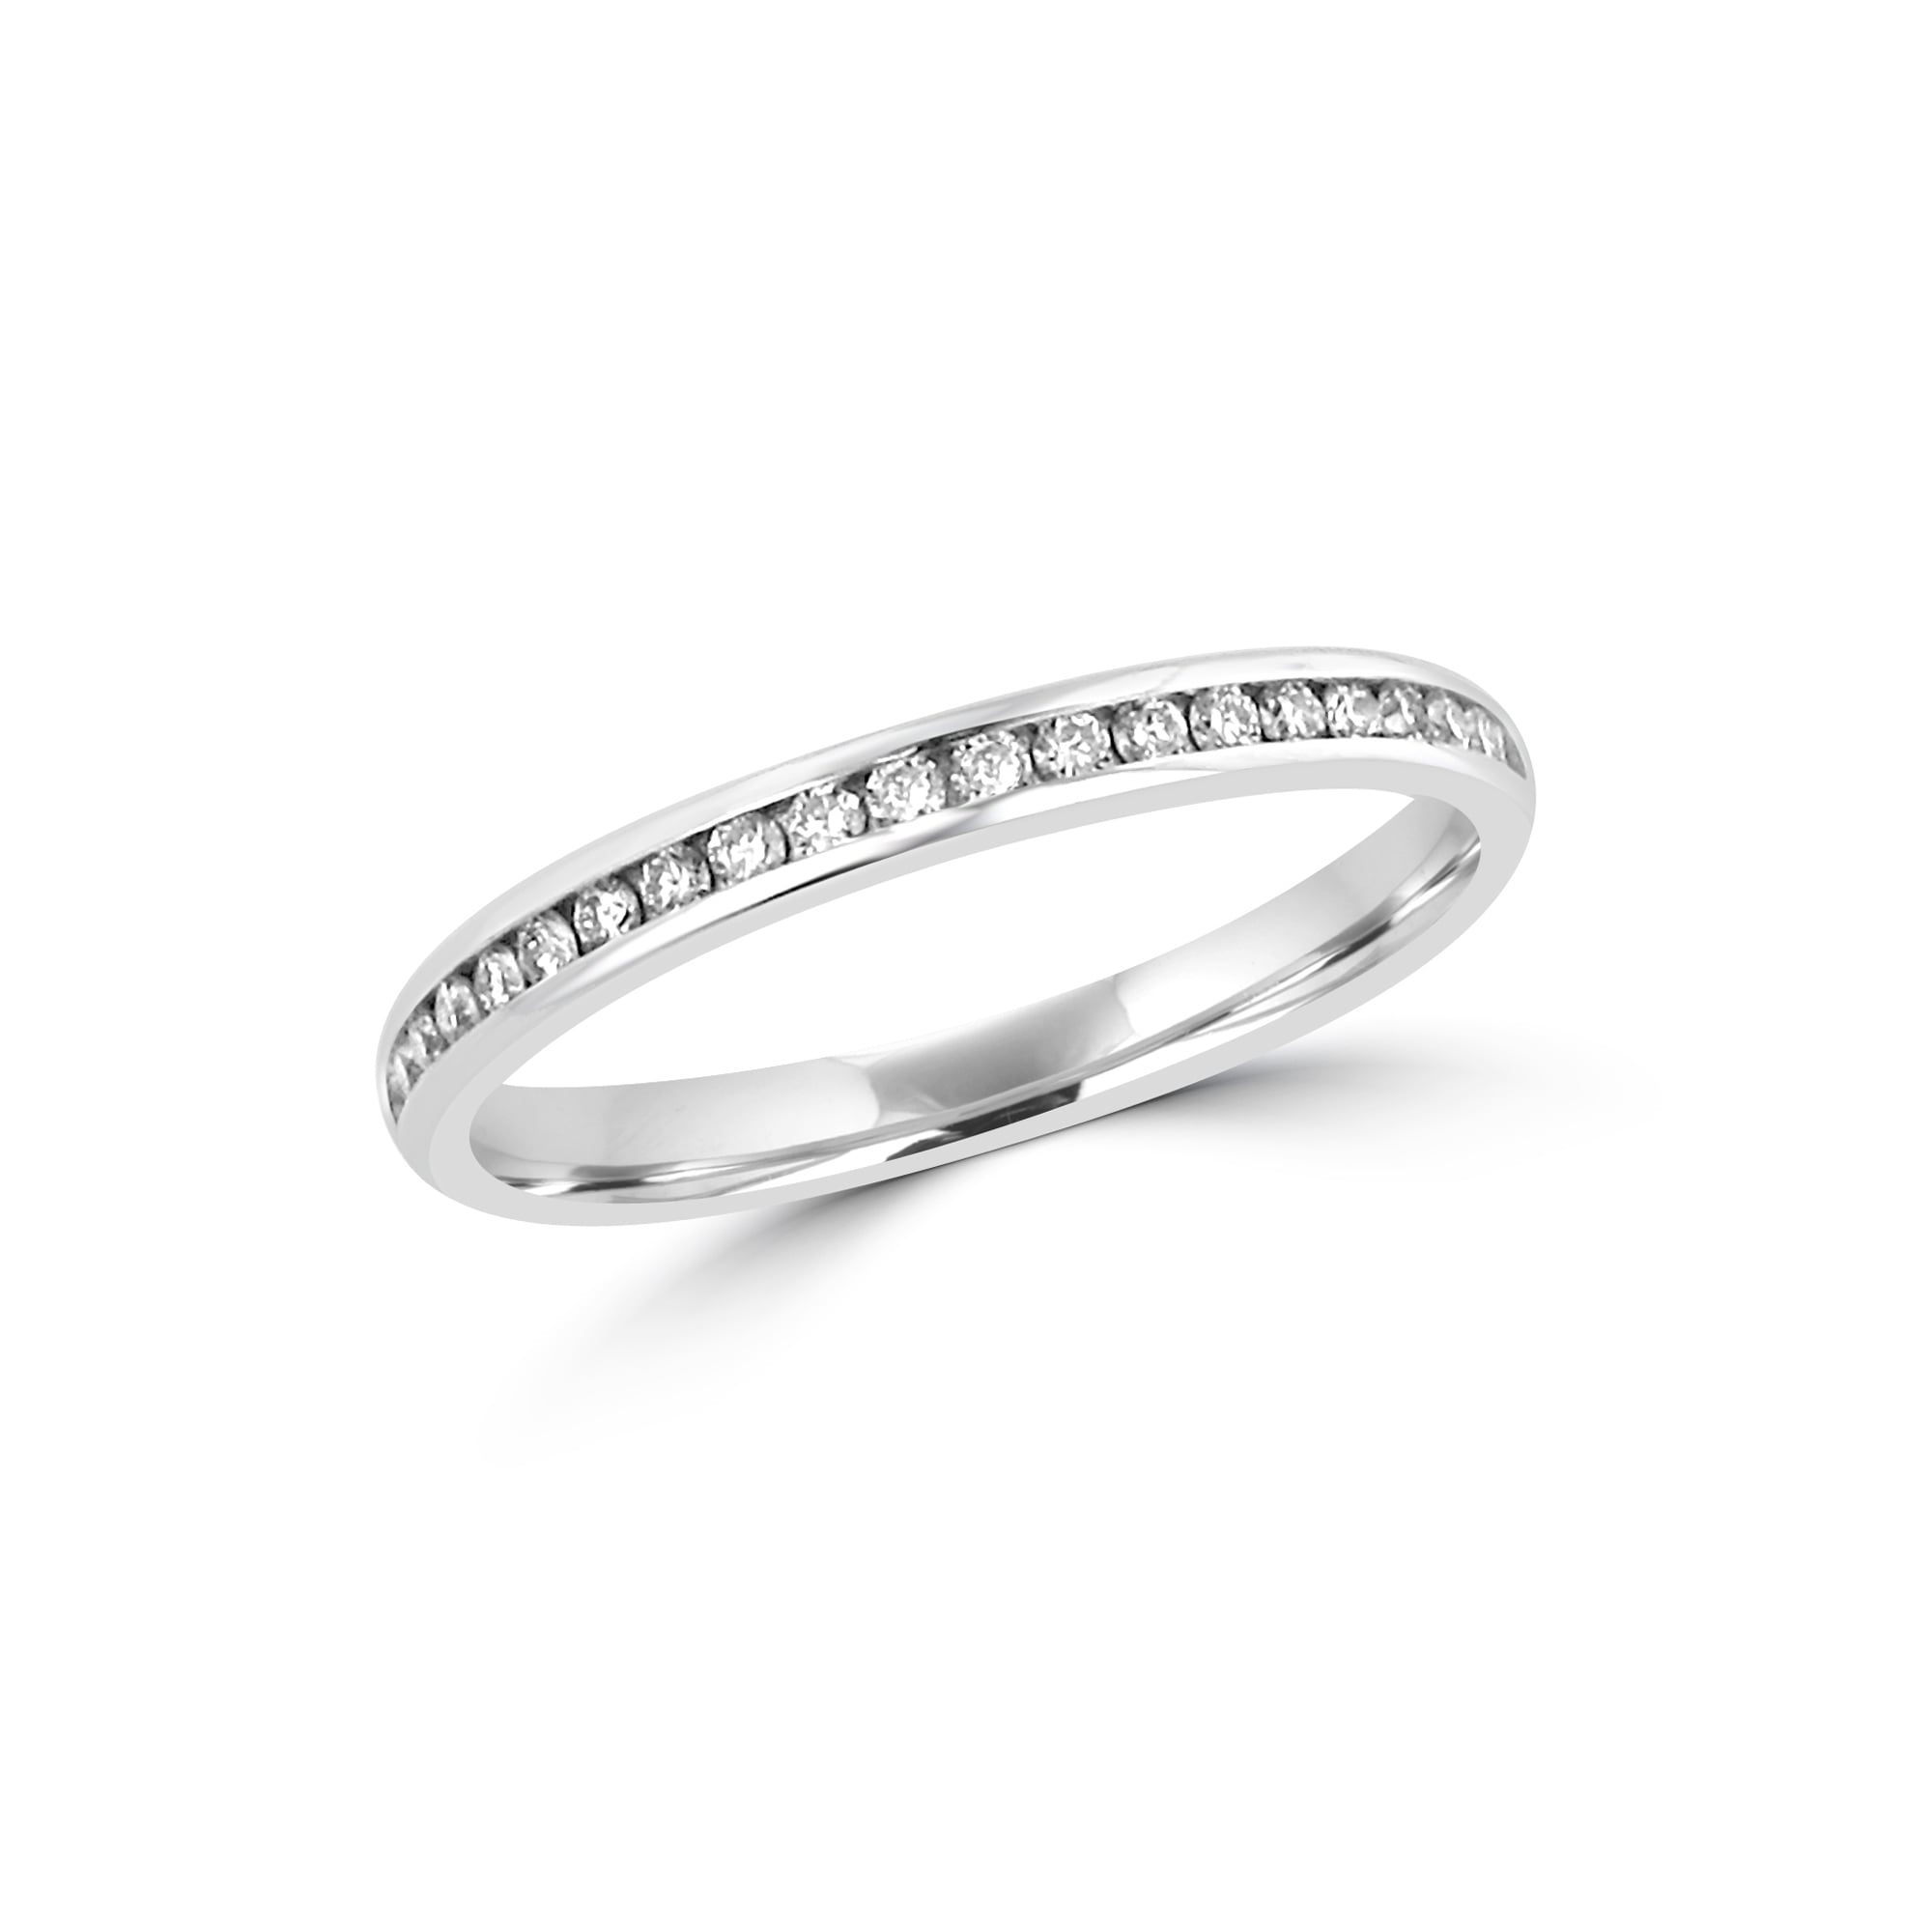 sterling bands safety inspirational adjustable tungsten rings pewter kay ring pin on is wedding luulla mens silver jewelers of big